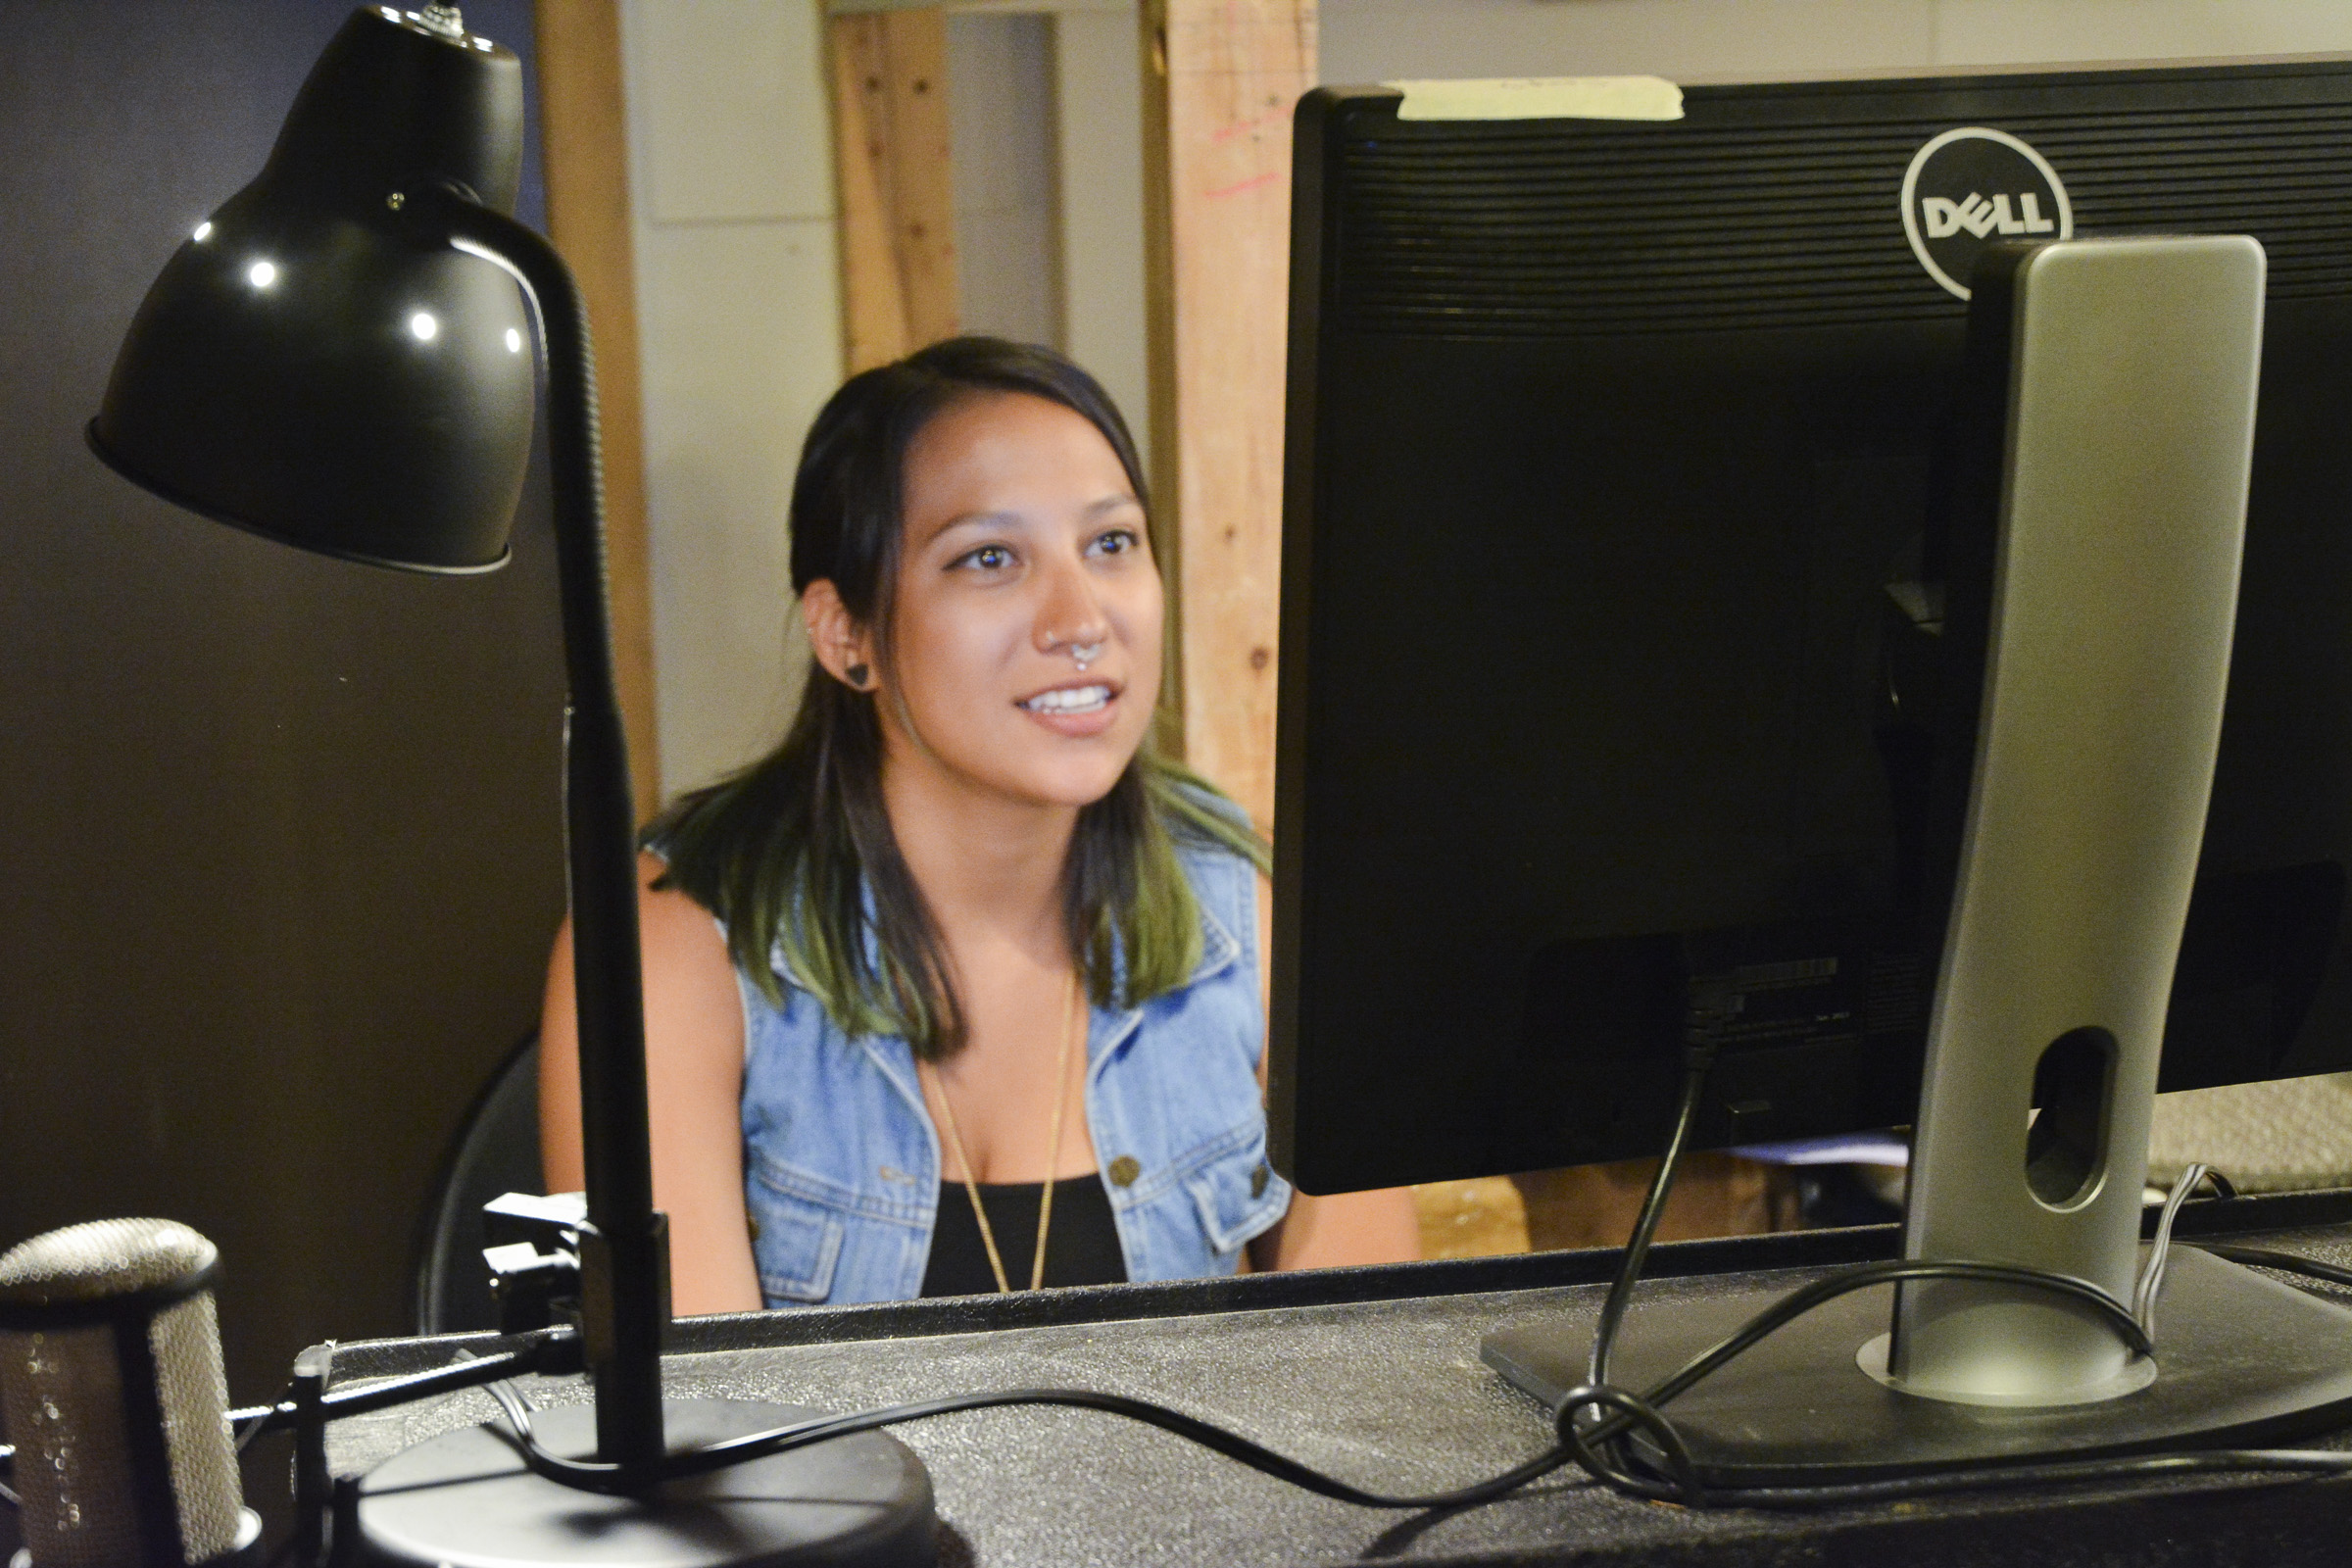 Museum volunteer Trinity Medellin working in the audio booth